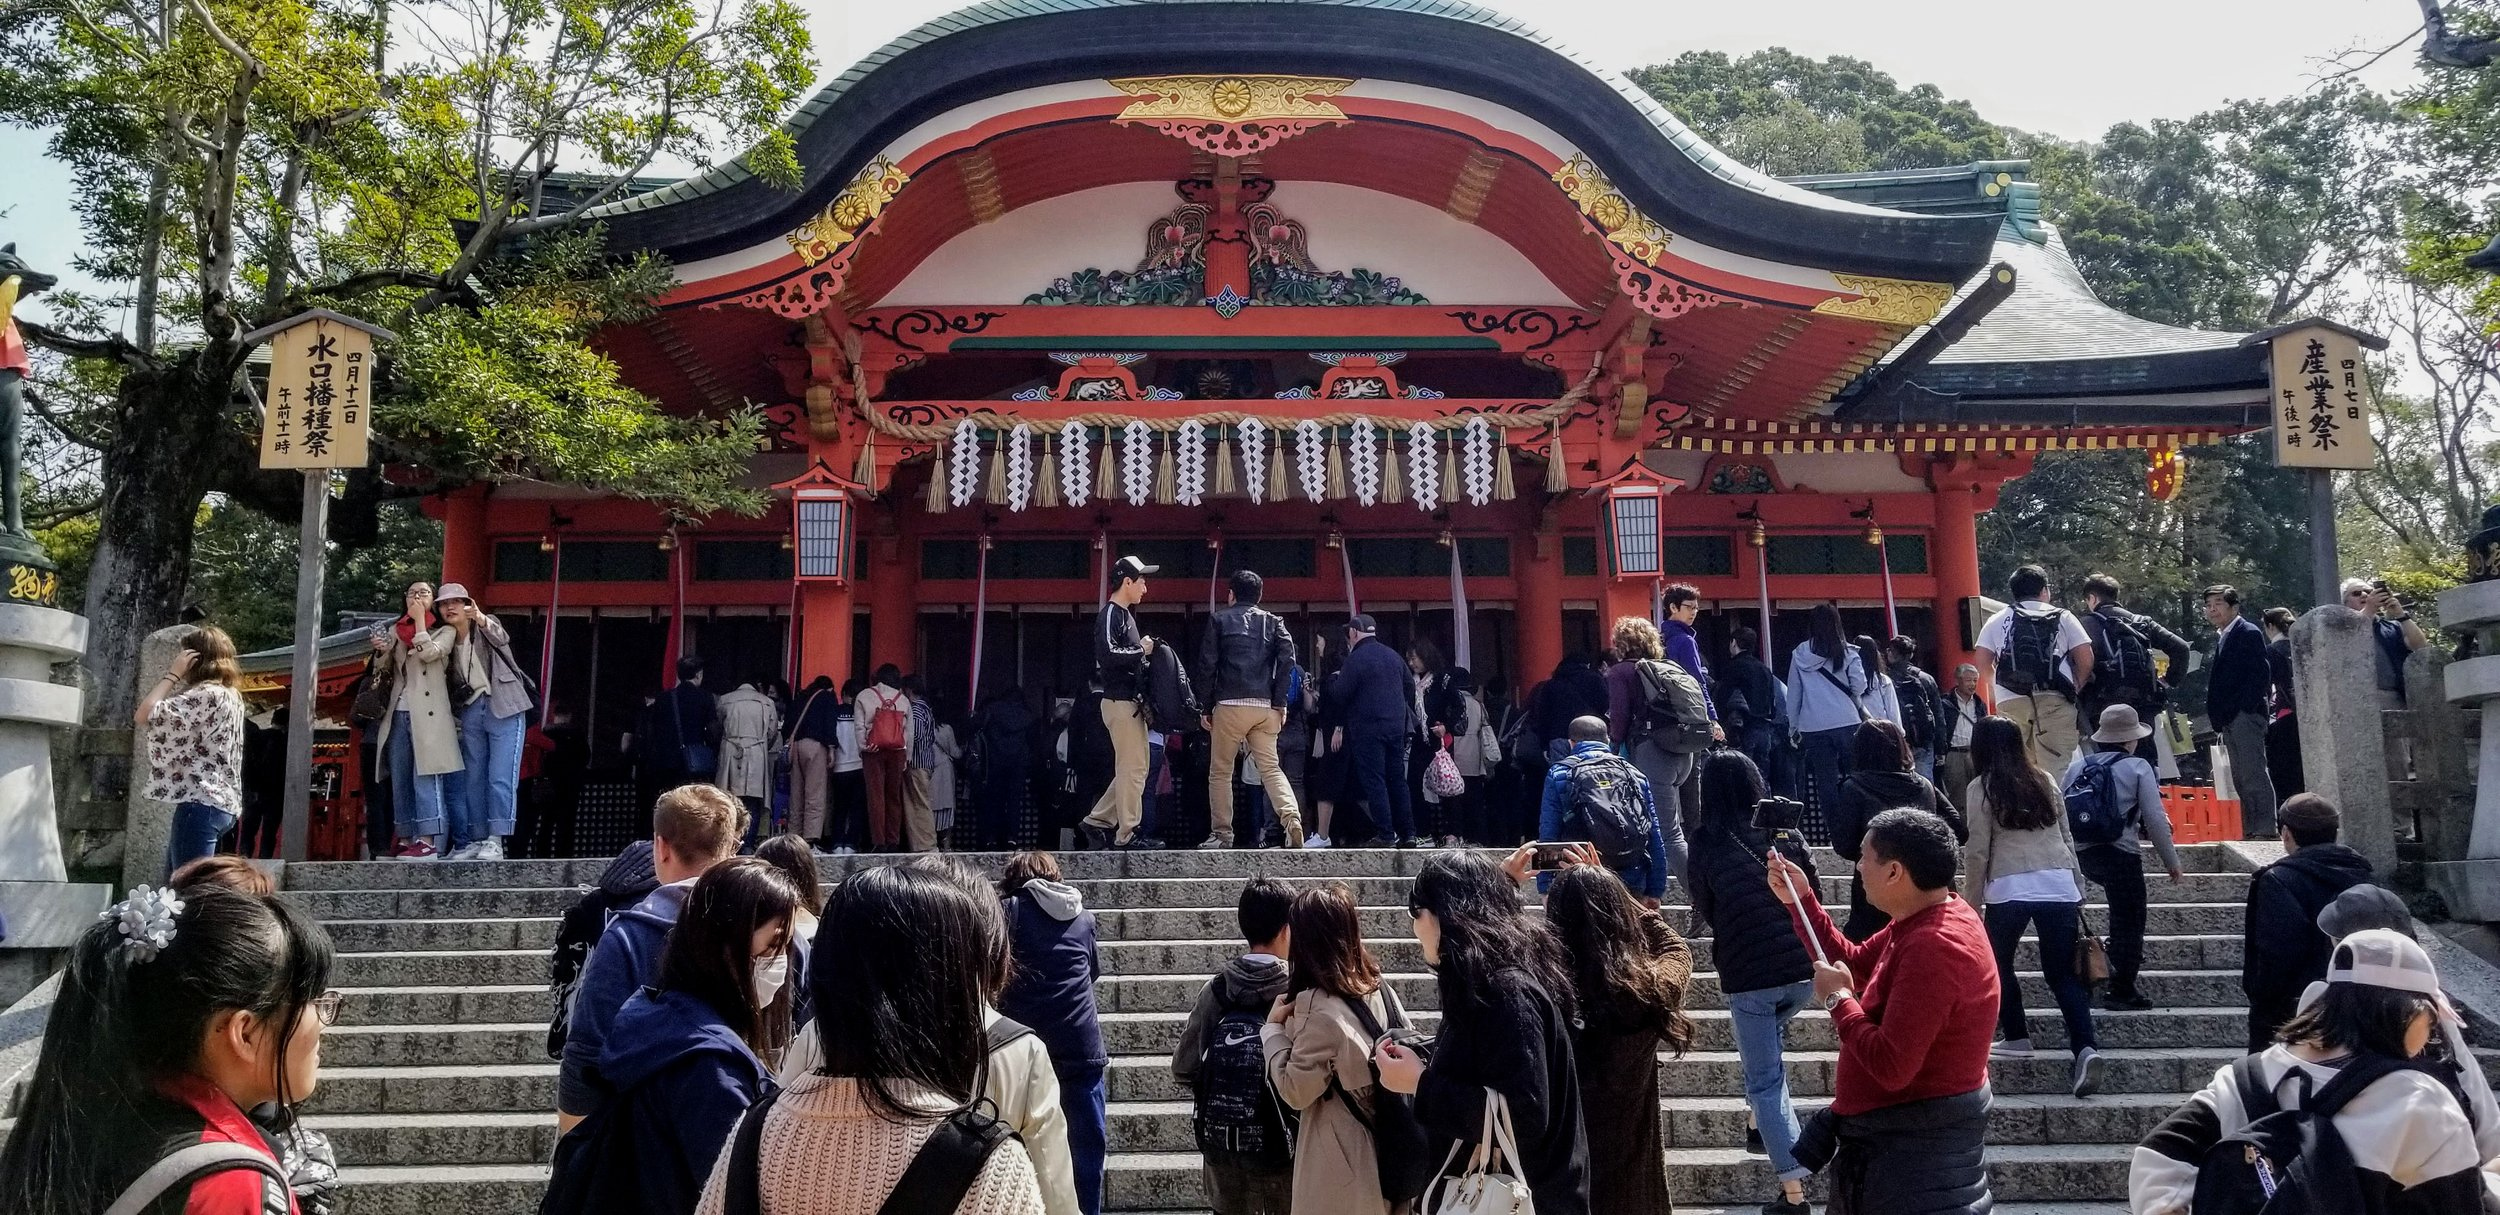 One of the first things we saw as we entered the shrine was this amazing temple, where people rang bells by moving streamers in a circular motion. Nearby, food vendors lined the streets. All the senses were in action!